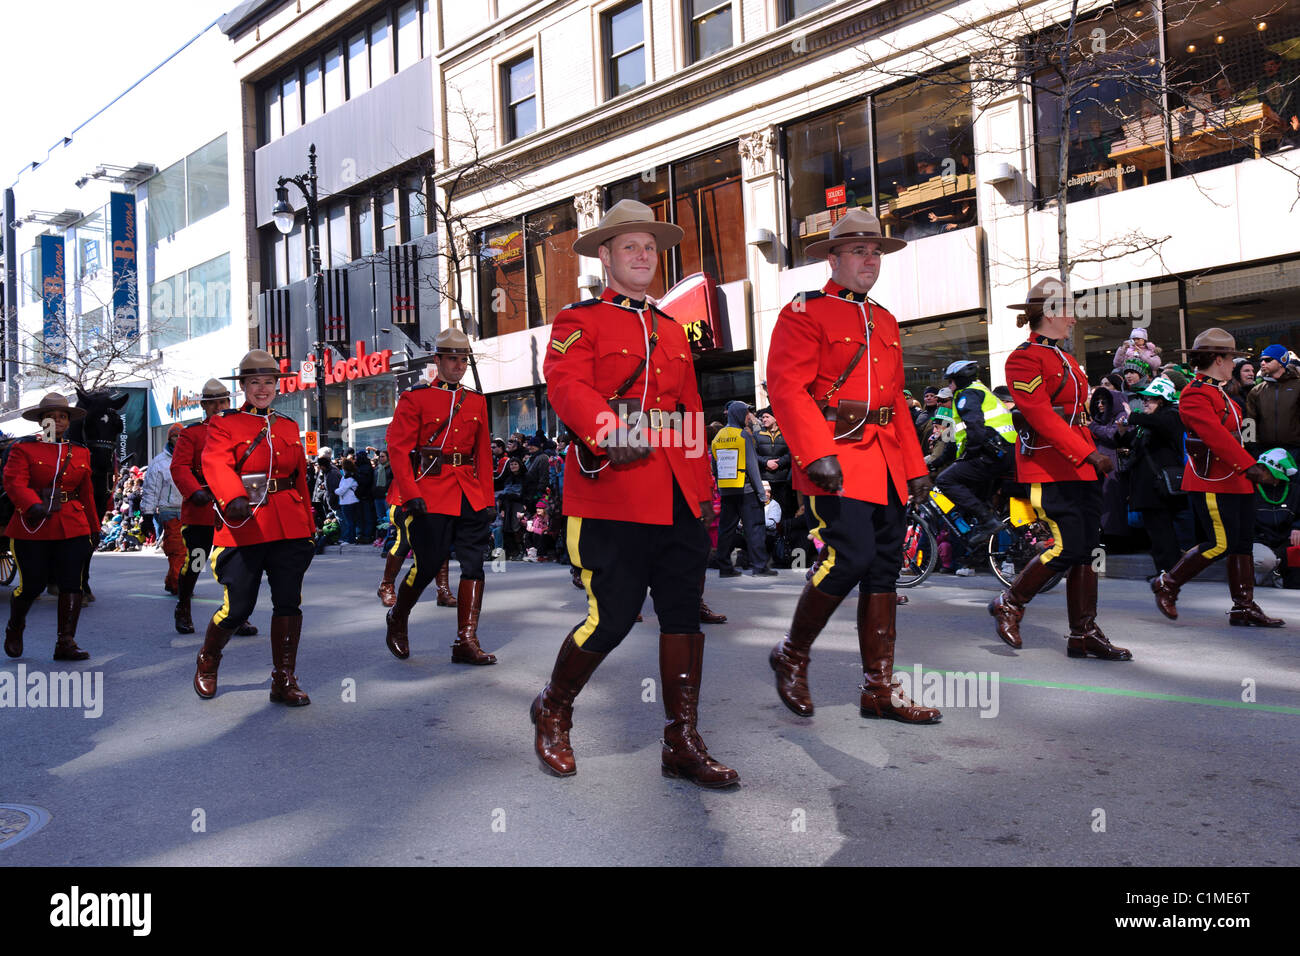 Canadian Mounties marching on Ste Catherine street in Montreal during the St Patrick's Day parade. - Stock Image